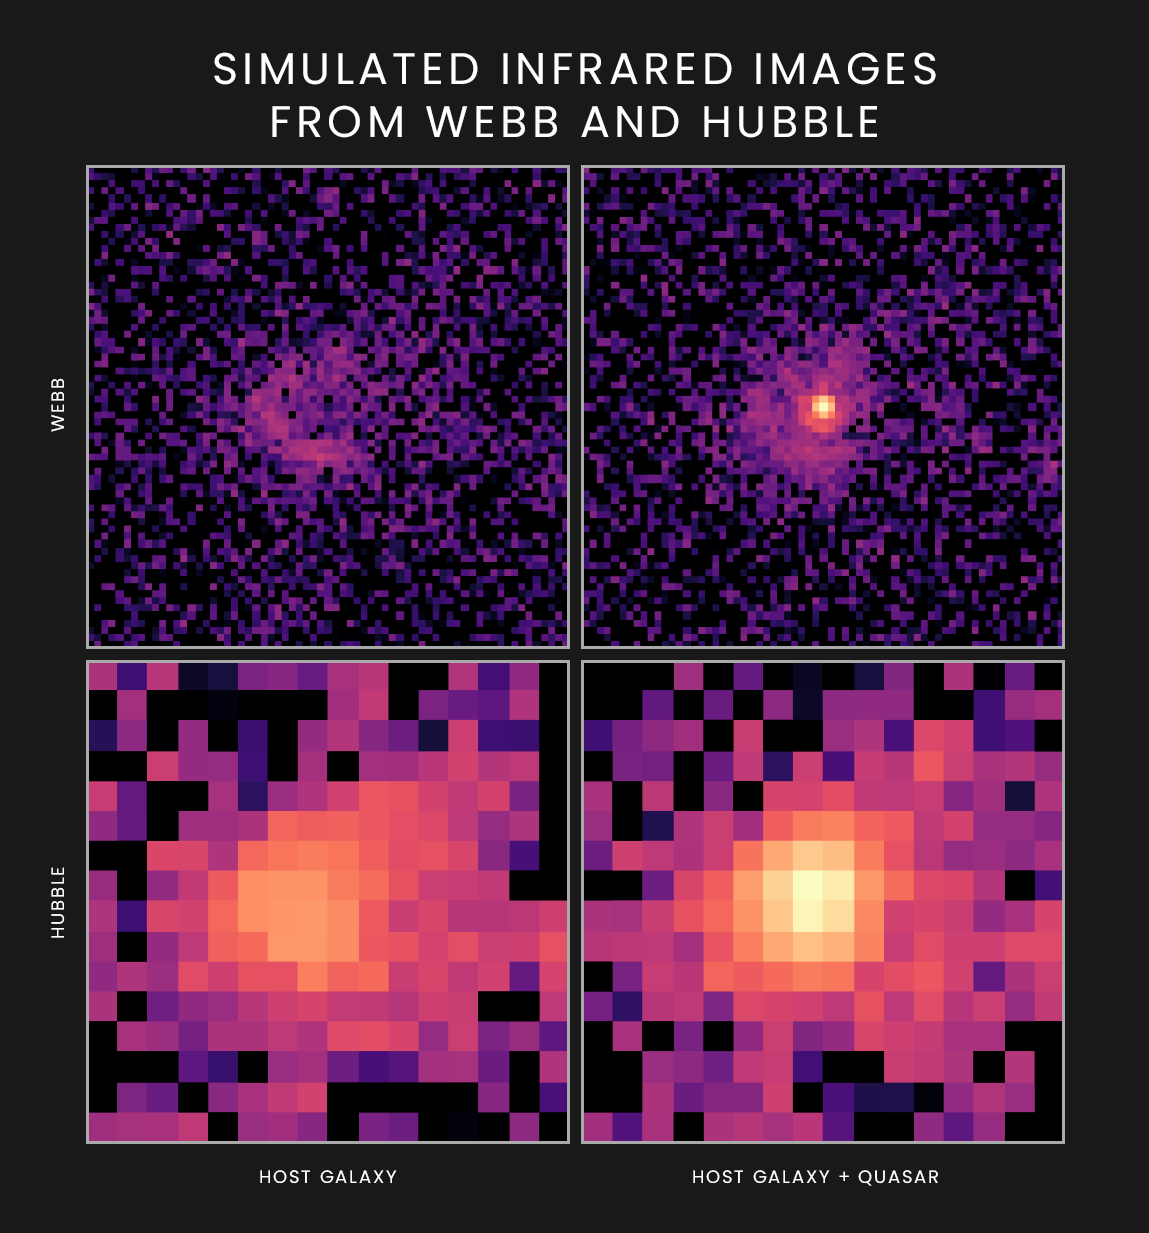 These simulated images show how a quasar and its host galaxy would appear to NASA's upcoming James Webb Space Telescope (top) and Hubble Space Telescope (bottom) at infrared wavelengths of 1.5 and 1.6 microns, respectively.